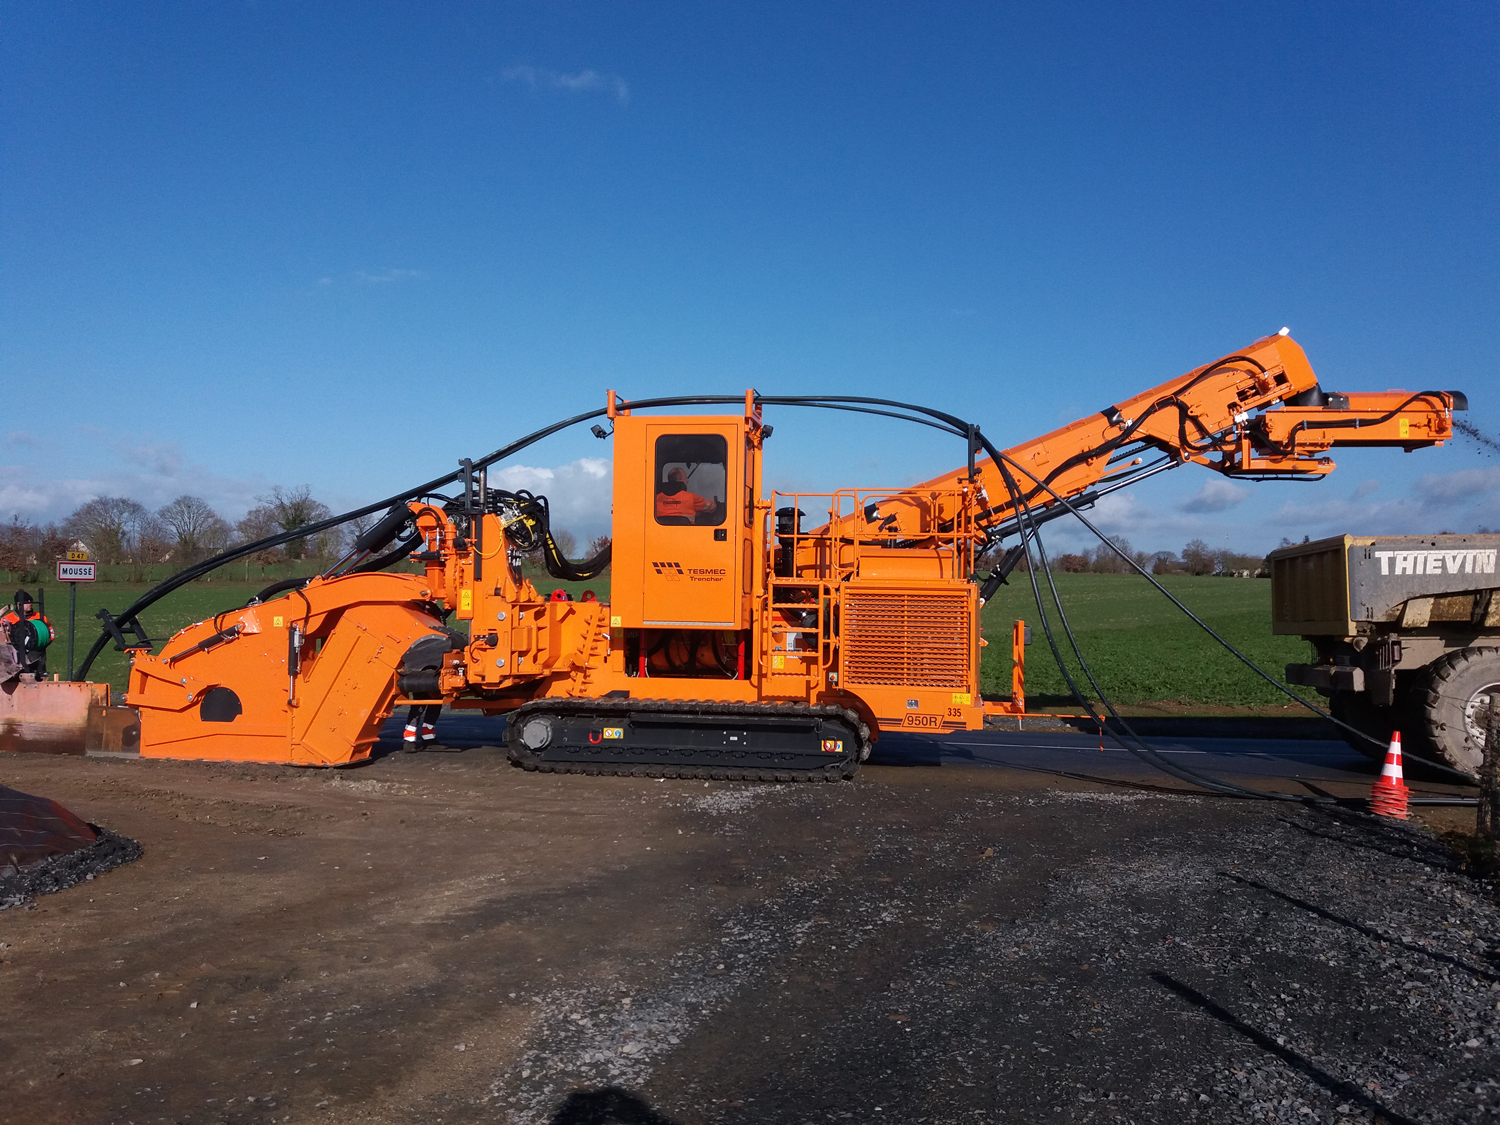 Tesmec 950R T620 Trencher for Fiber Optic projects in urban areas